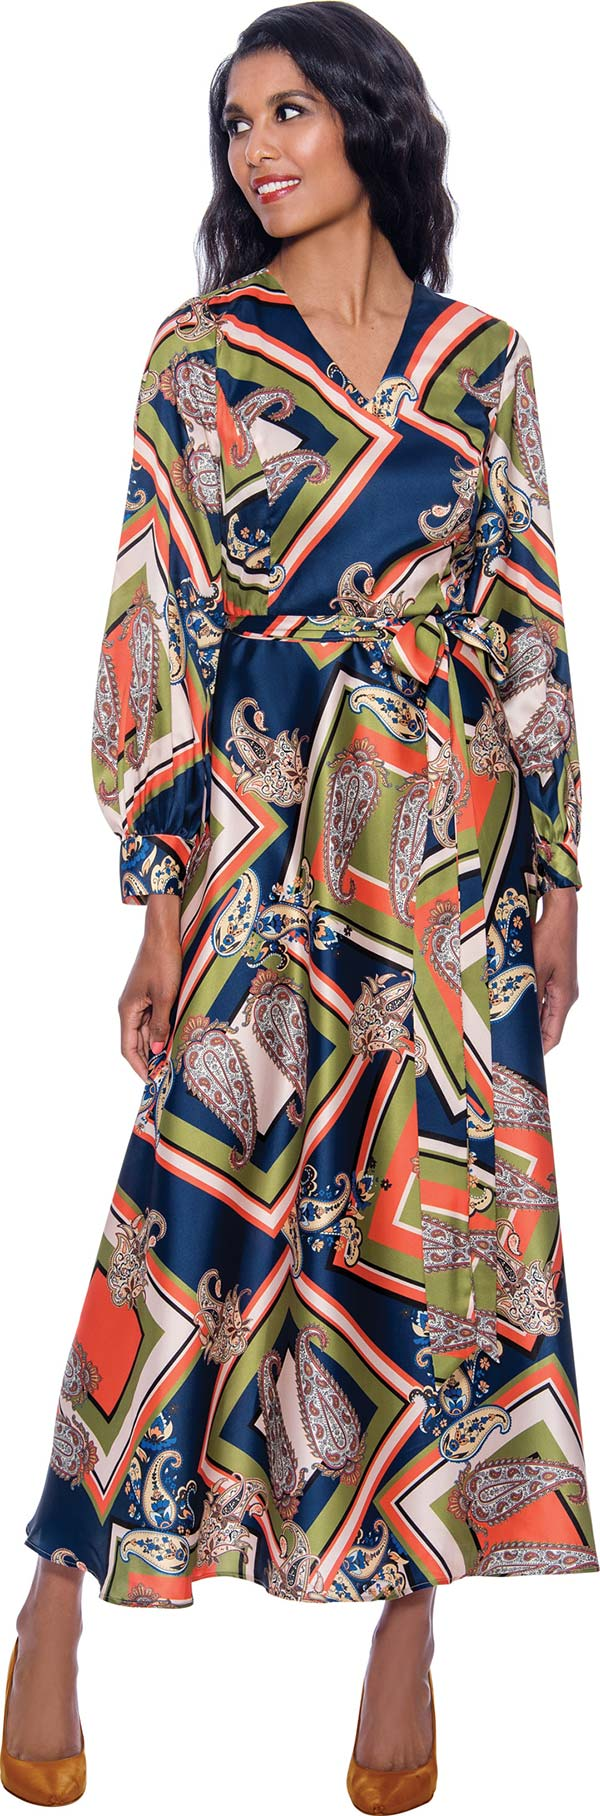 Nubiano Dresses DN1631 - V-Neck Dress In Multi-Print Design With Bishop Sleeves And Sash